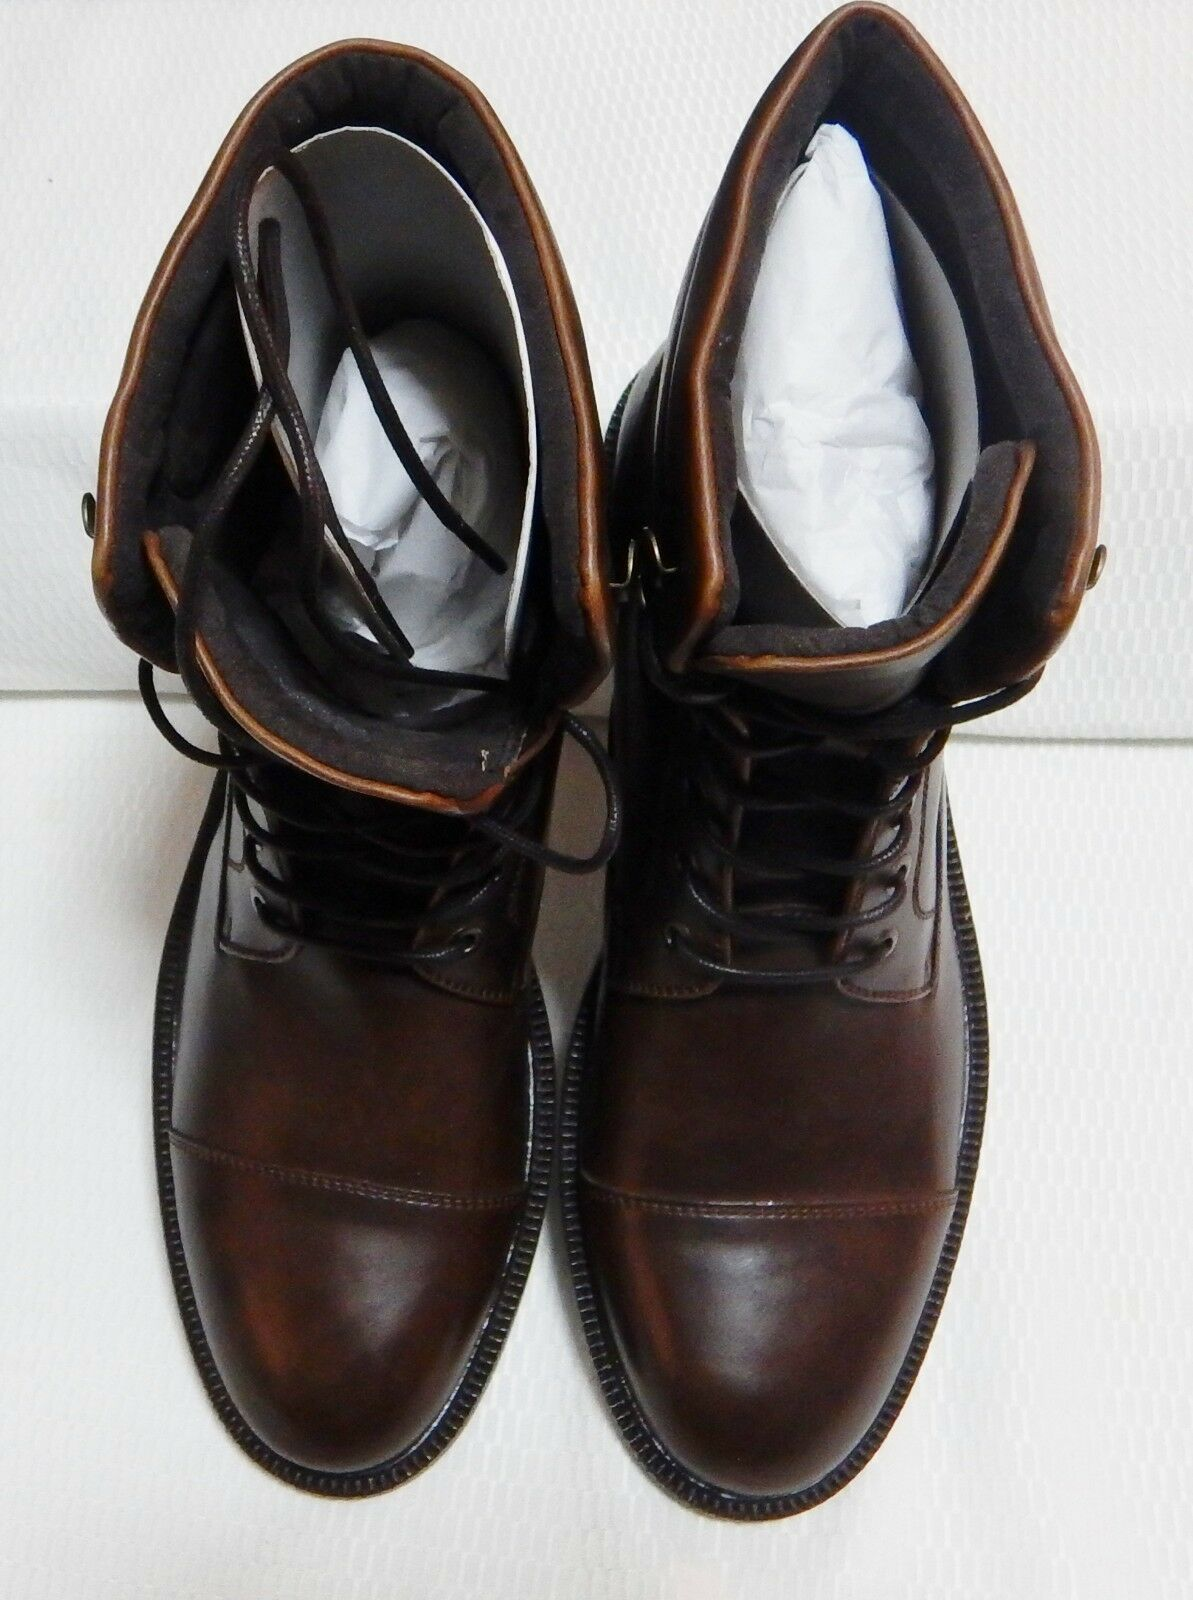 KENNETH COLE LET'S ROLL CAP TOE BOOT( BOX BROWN ) NEW WITH BOX BOOT(  SIZE 8.5 M  #1776-1 fc2627